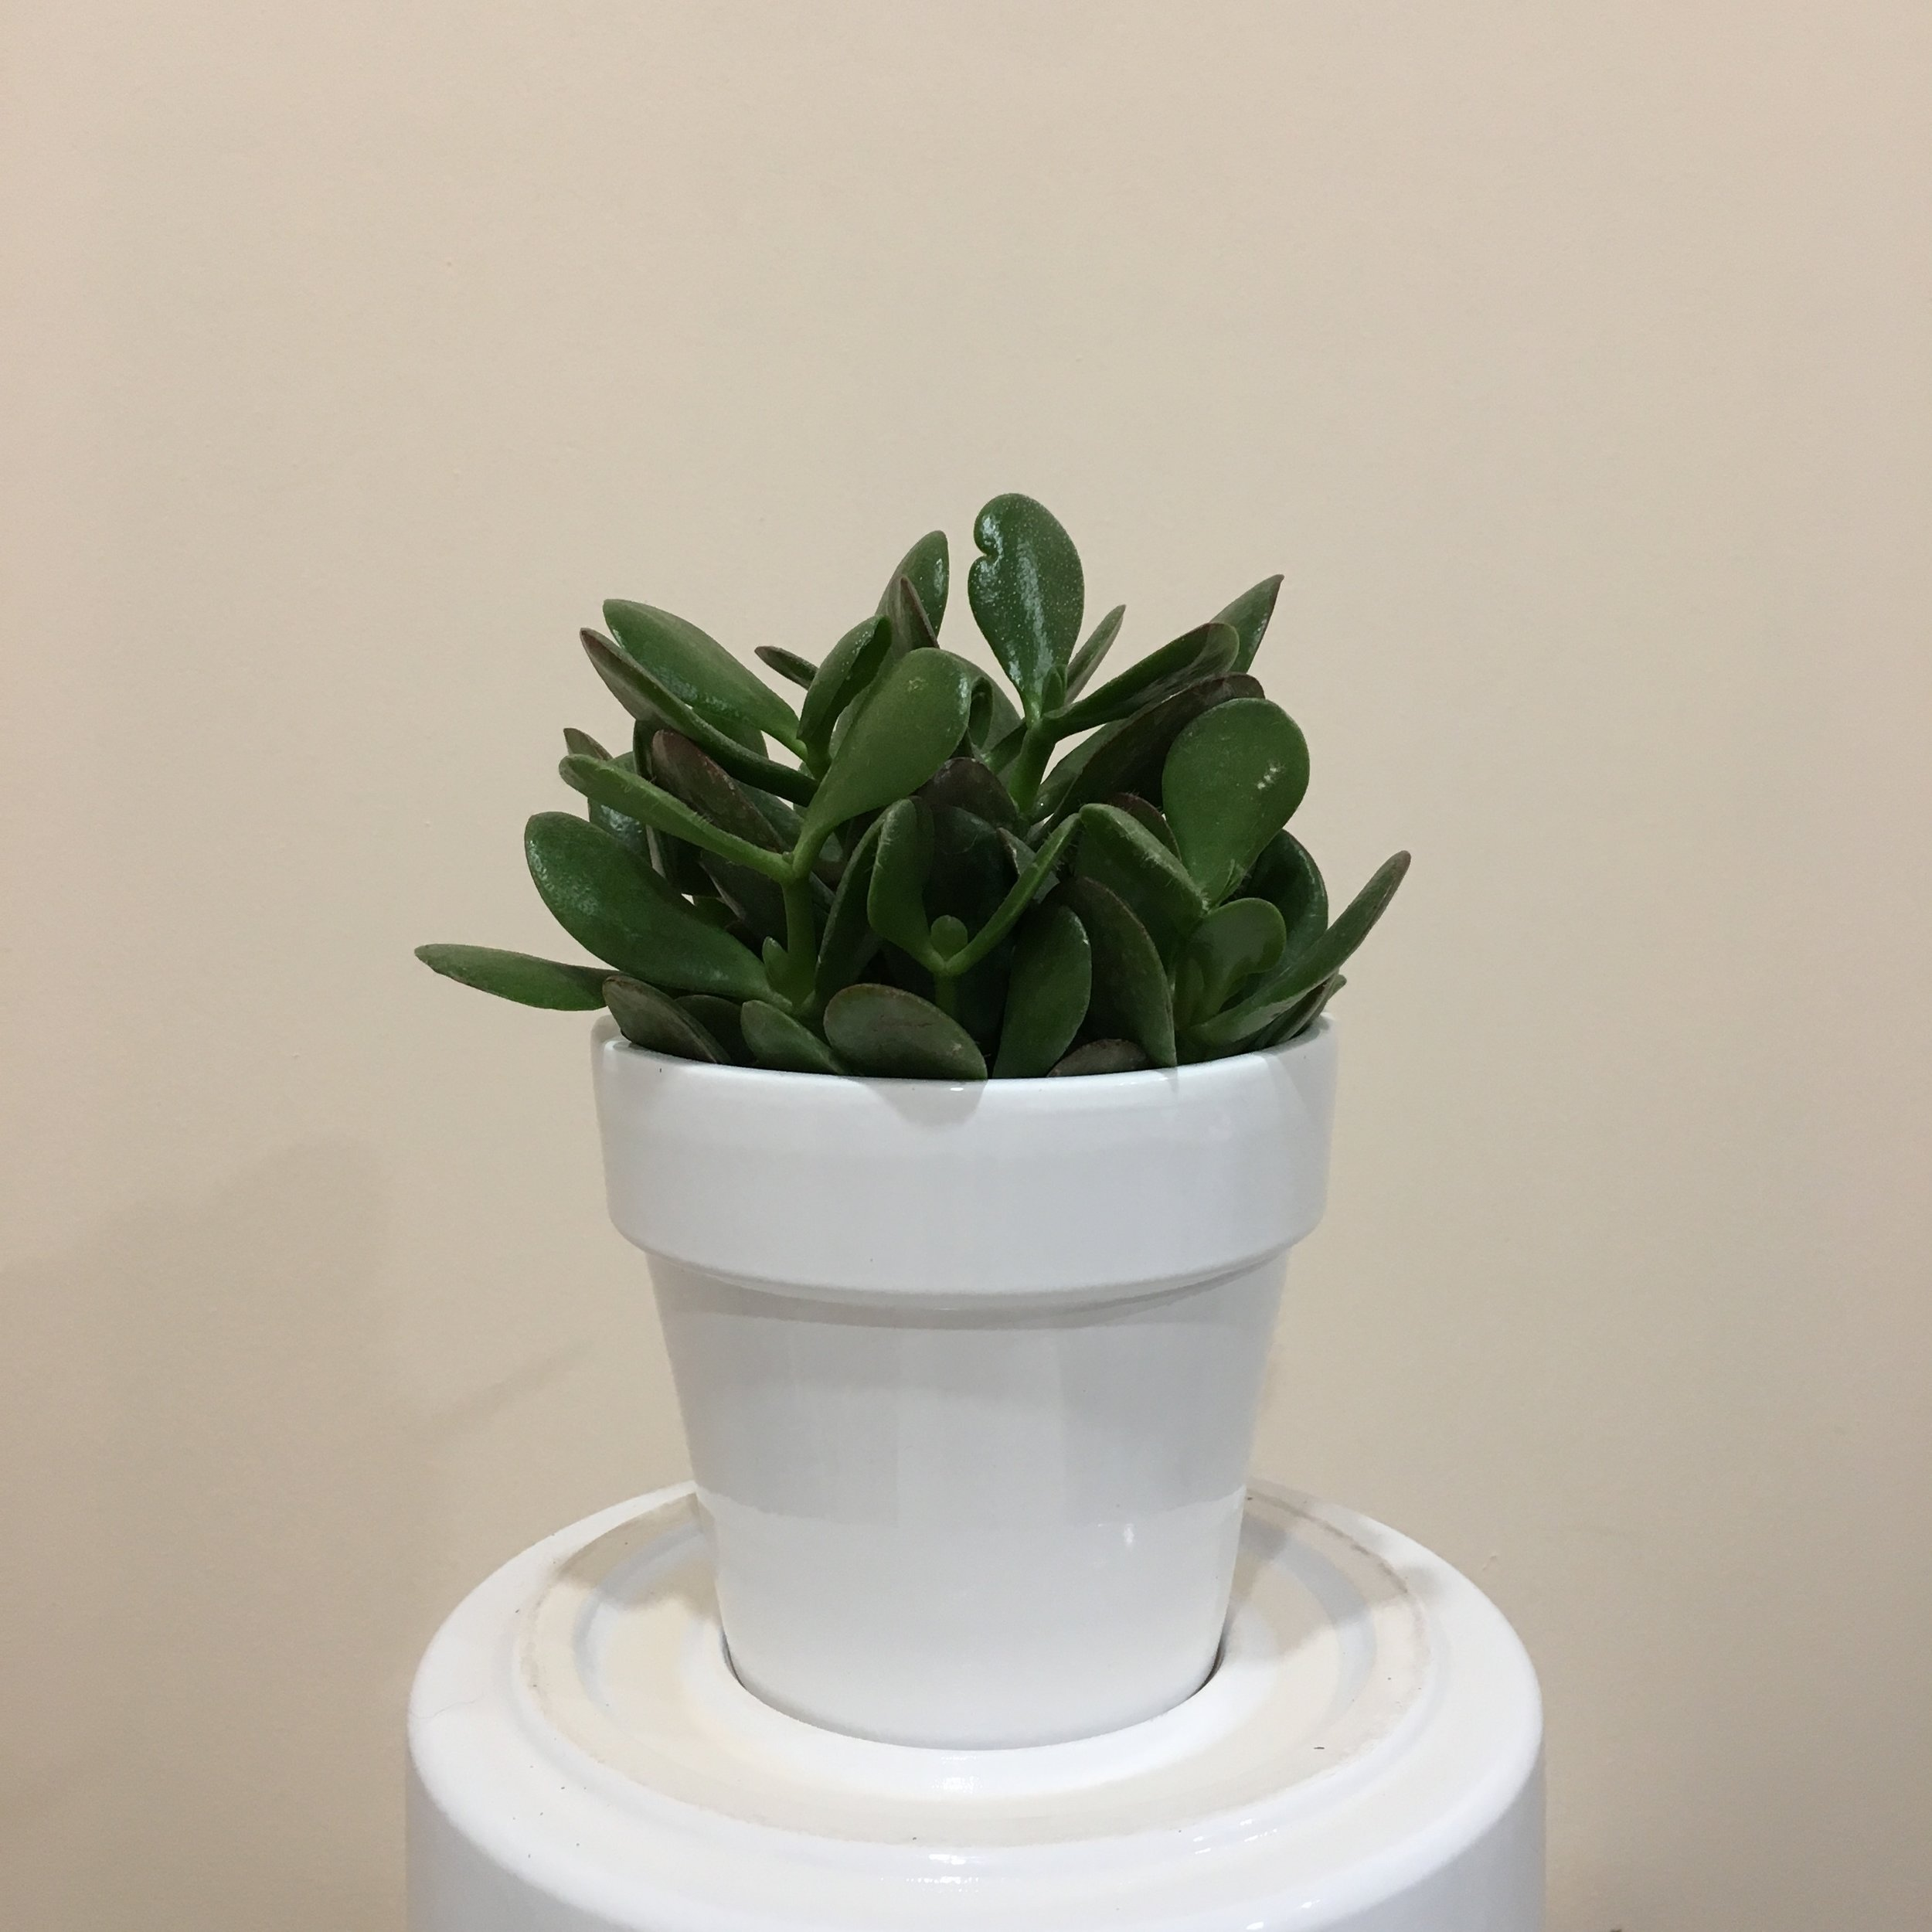 Jade - Light - Bright, direct or indirect light.Water - Jades are part of the succulent family and require minimal watering. Try watering them once every 3 to 4 weeks, allowing the soil to fully drain in between watering.Origin - South AfricaFun Fact - Nicknames for this plant include money plant, money tree, and lucky plant.